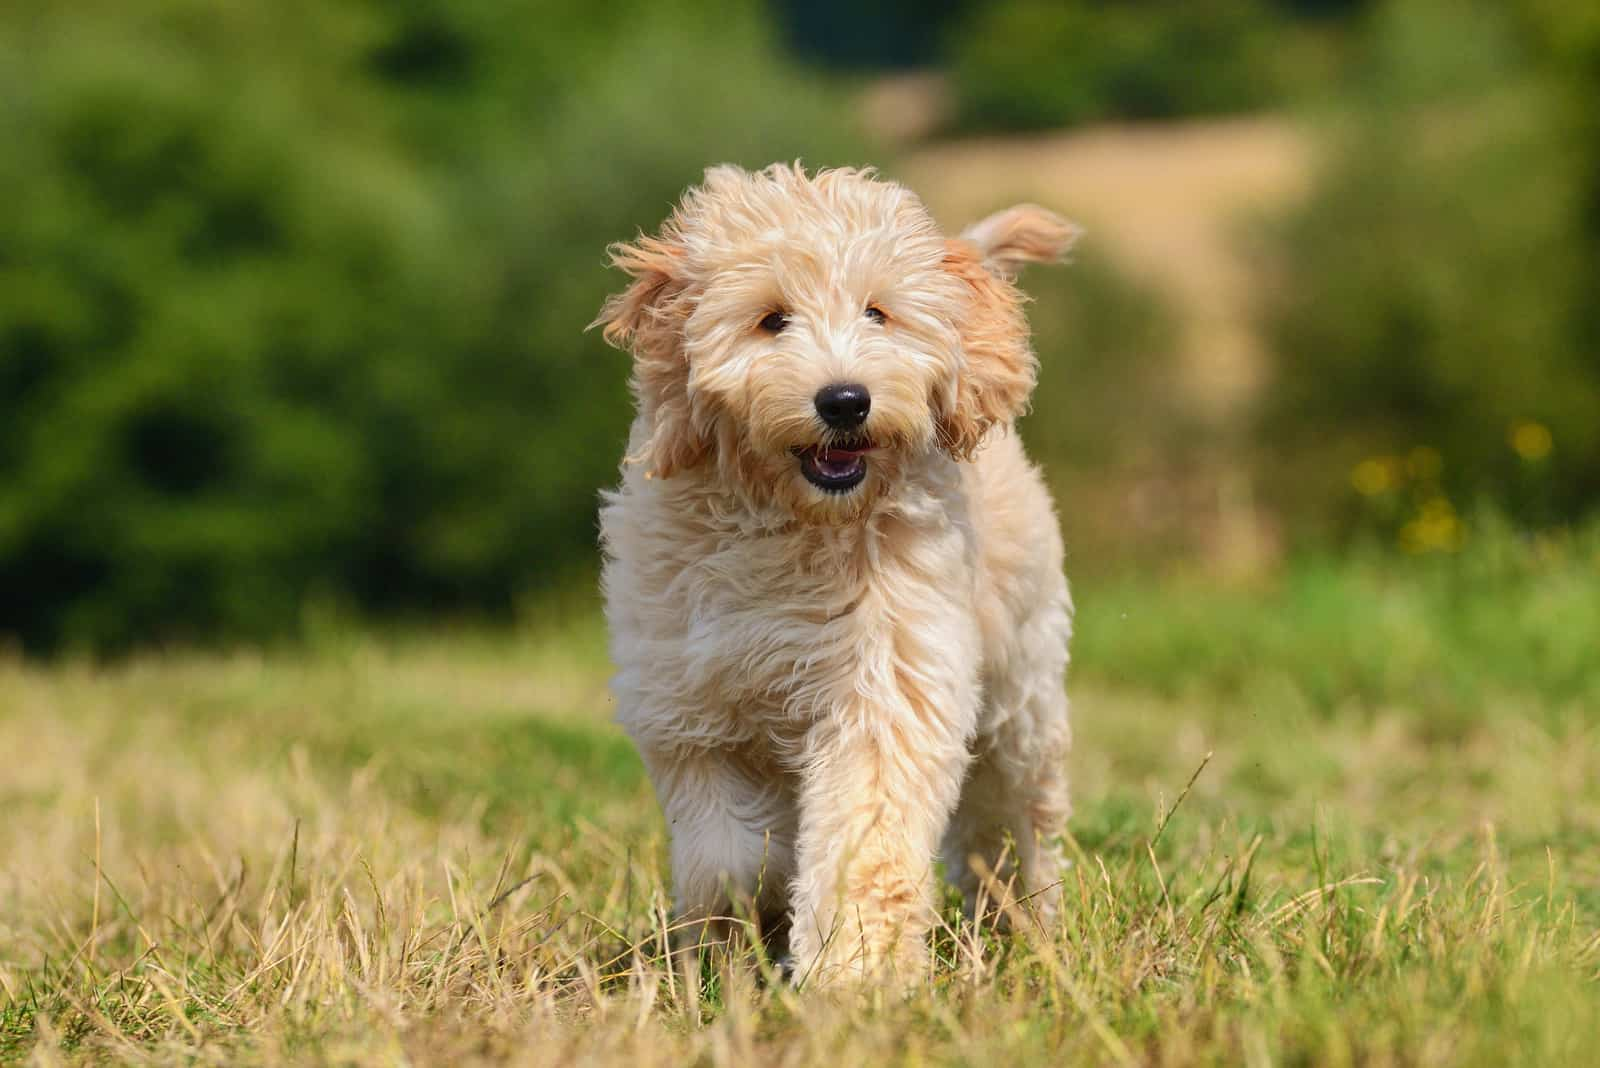 a beautiful goldendoodle dog walks on the grass